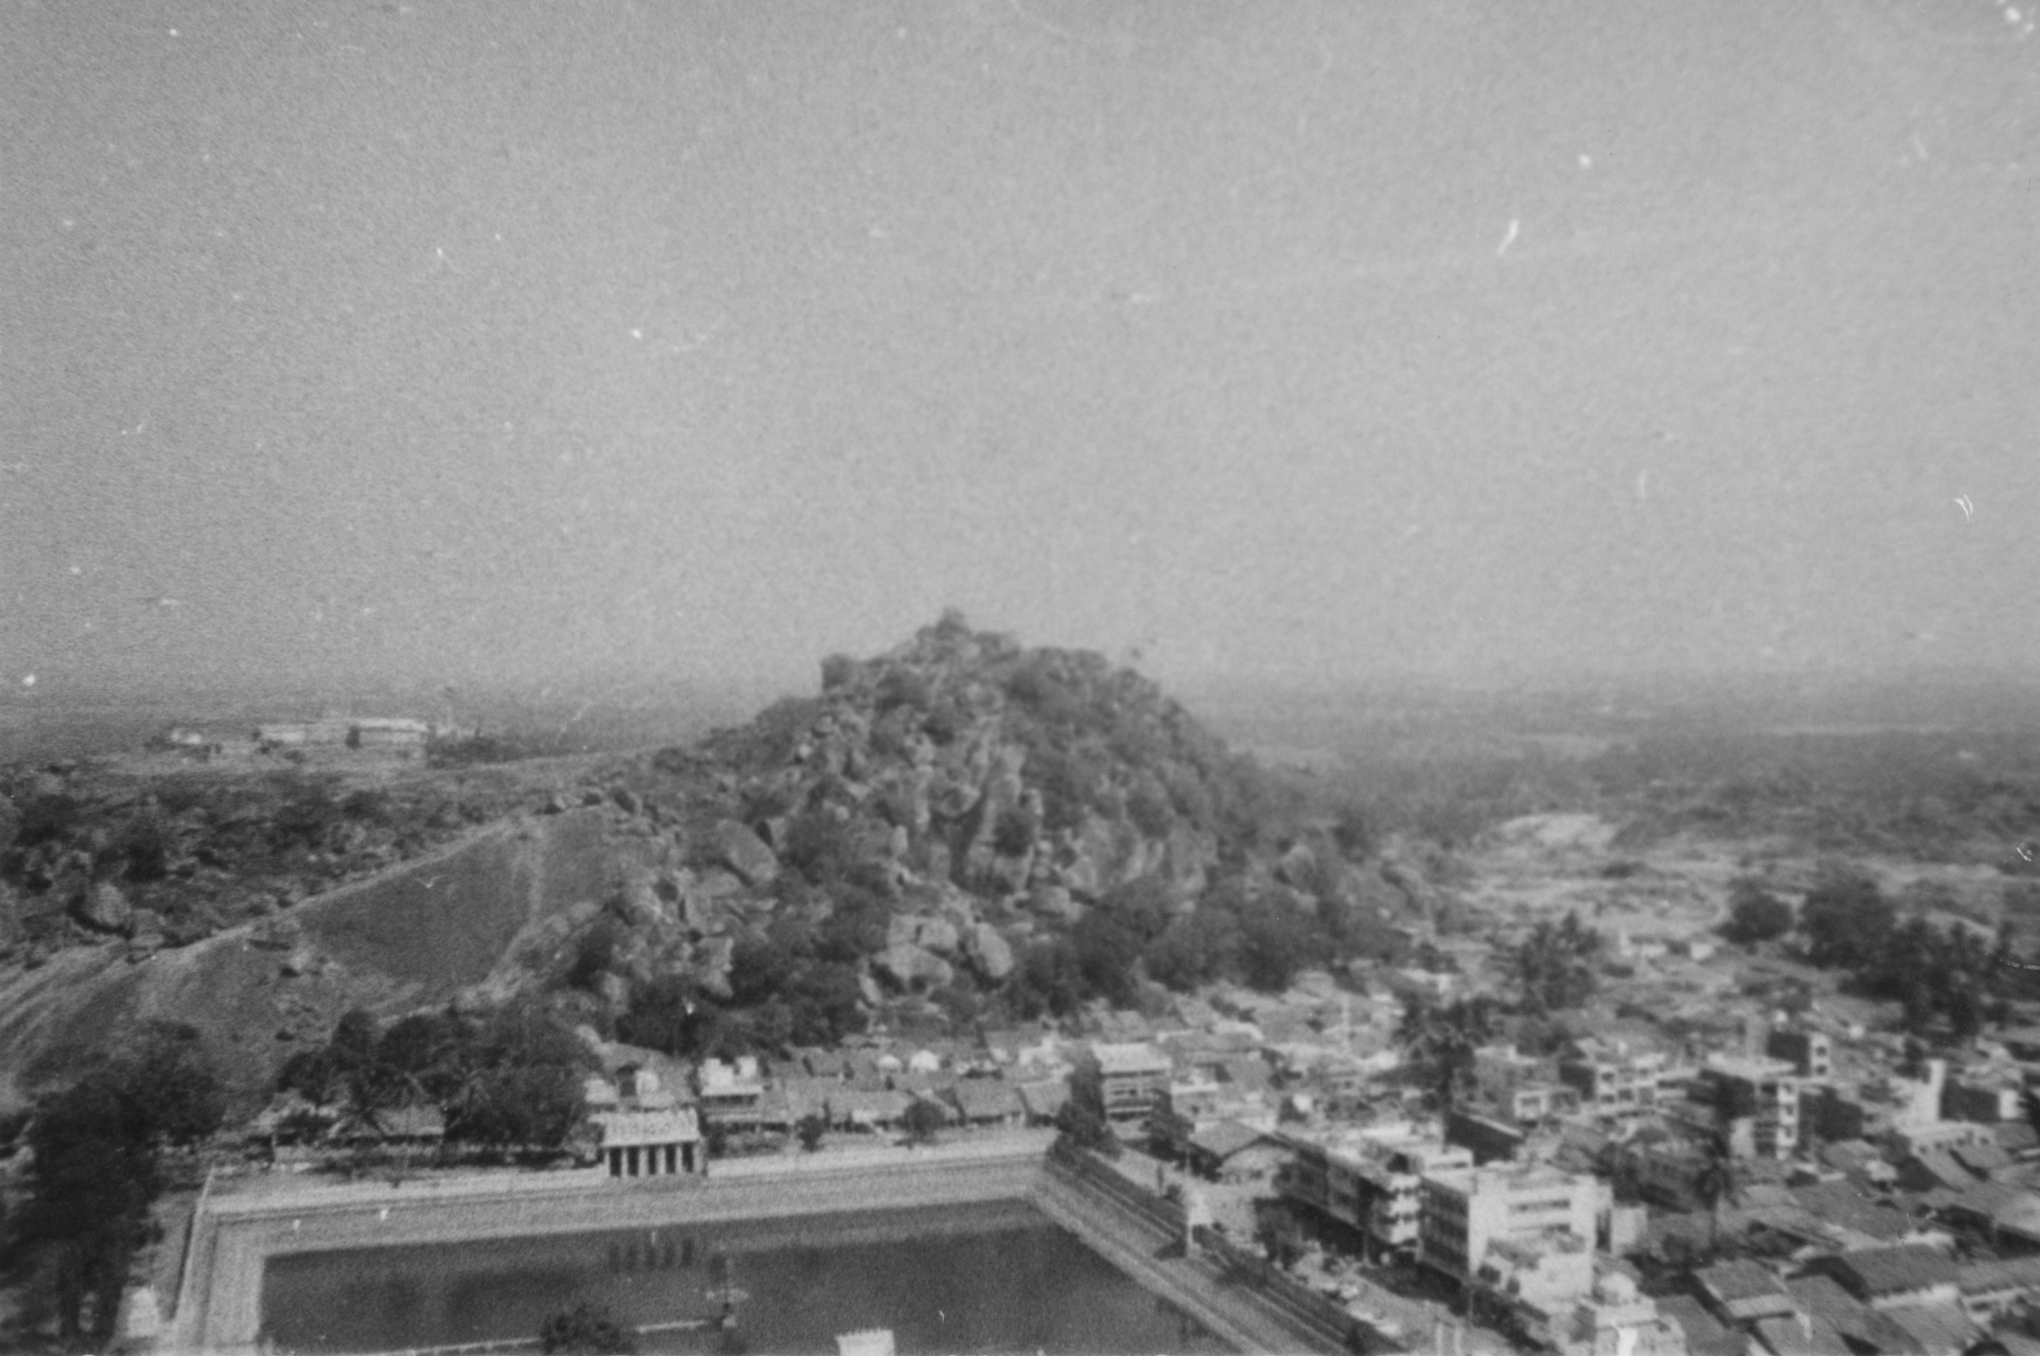 iuliana old picture of an city next to a mountain and a square water pool